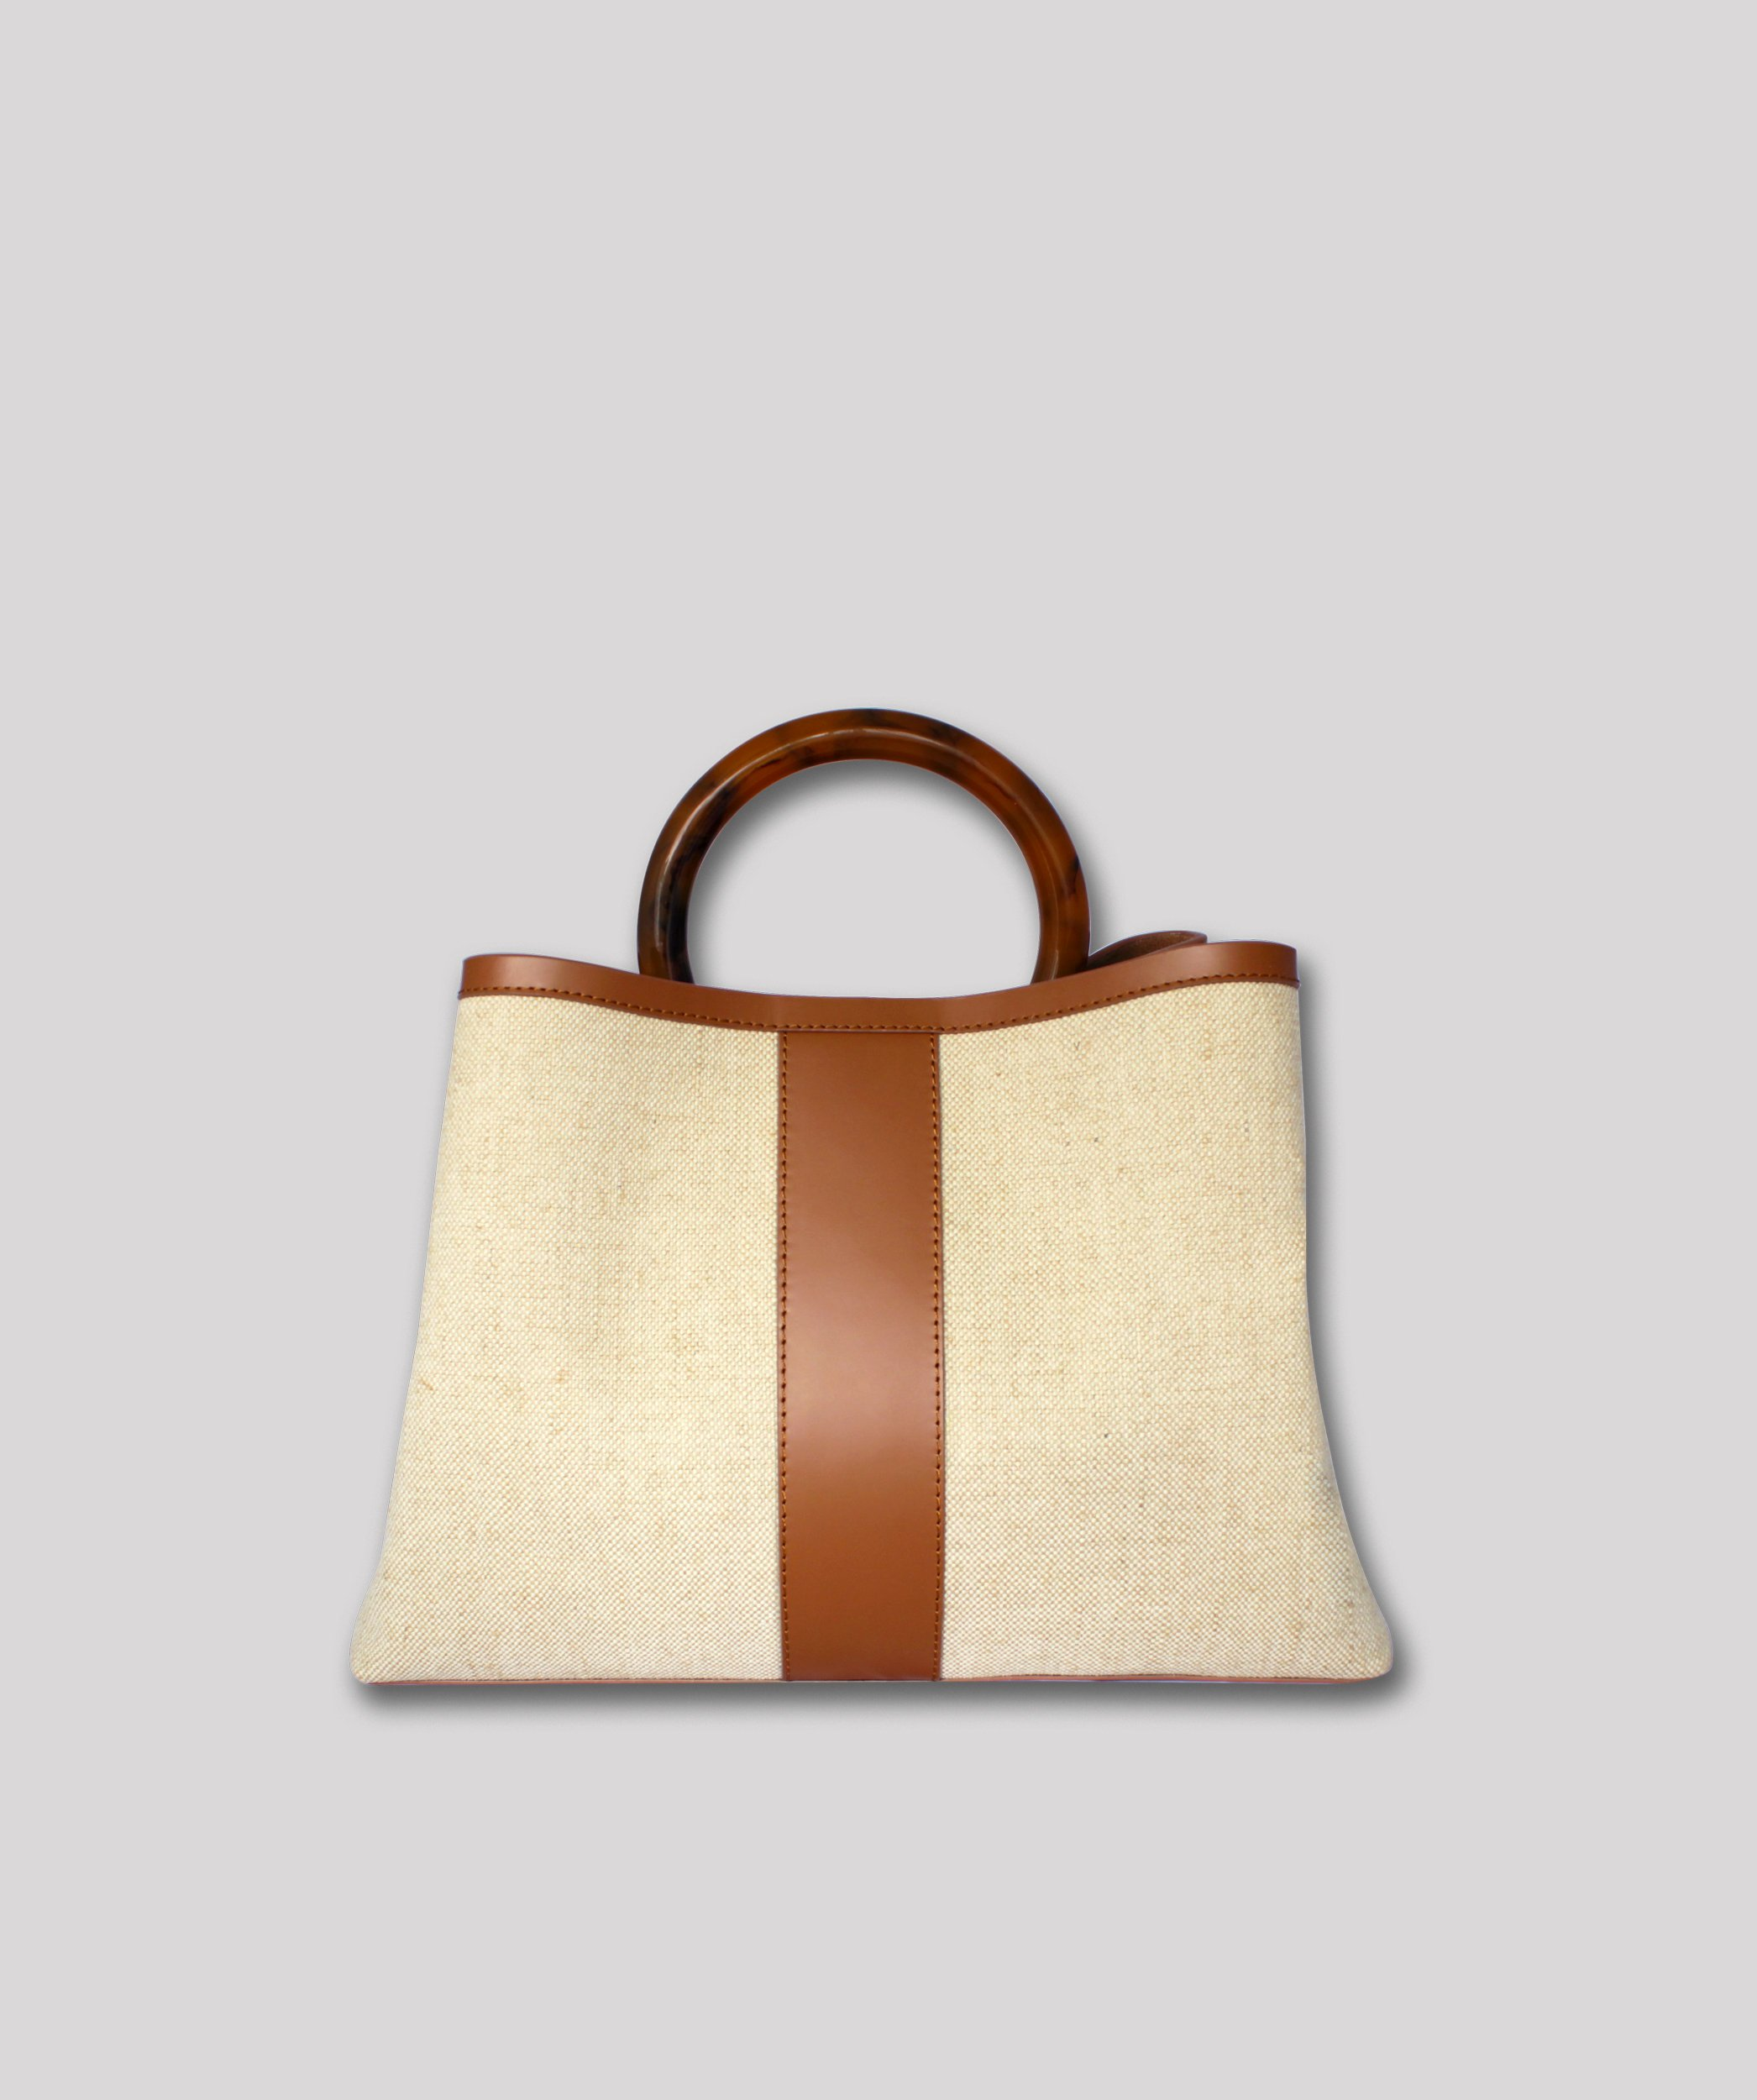 Ling Wu Miller Large Canvas and Tan Leather, $780